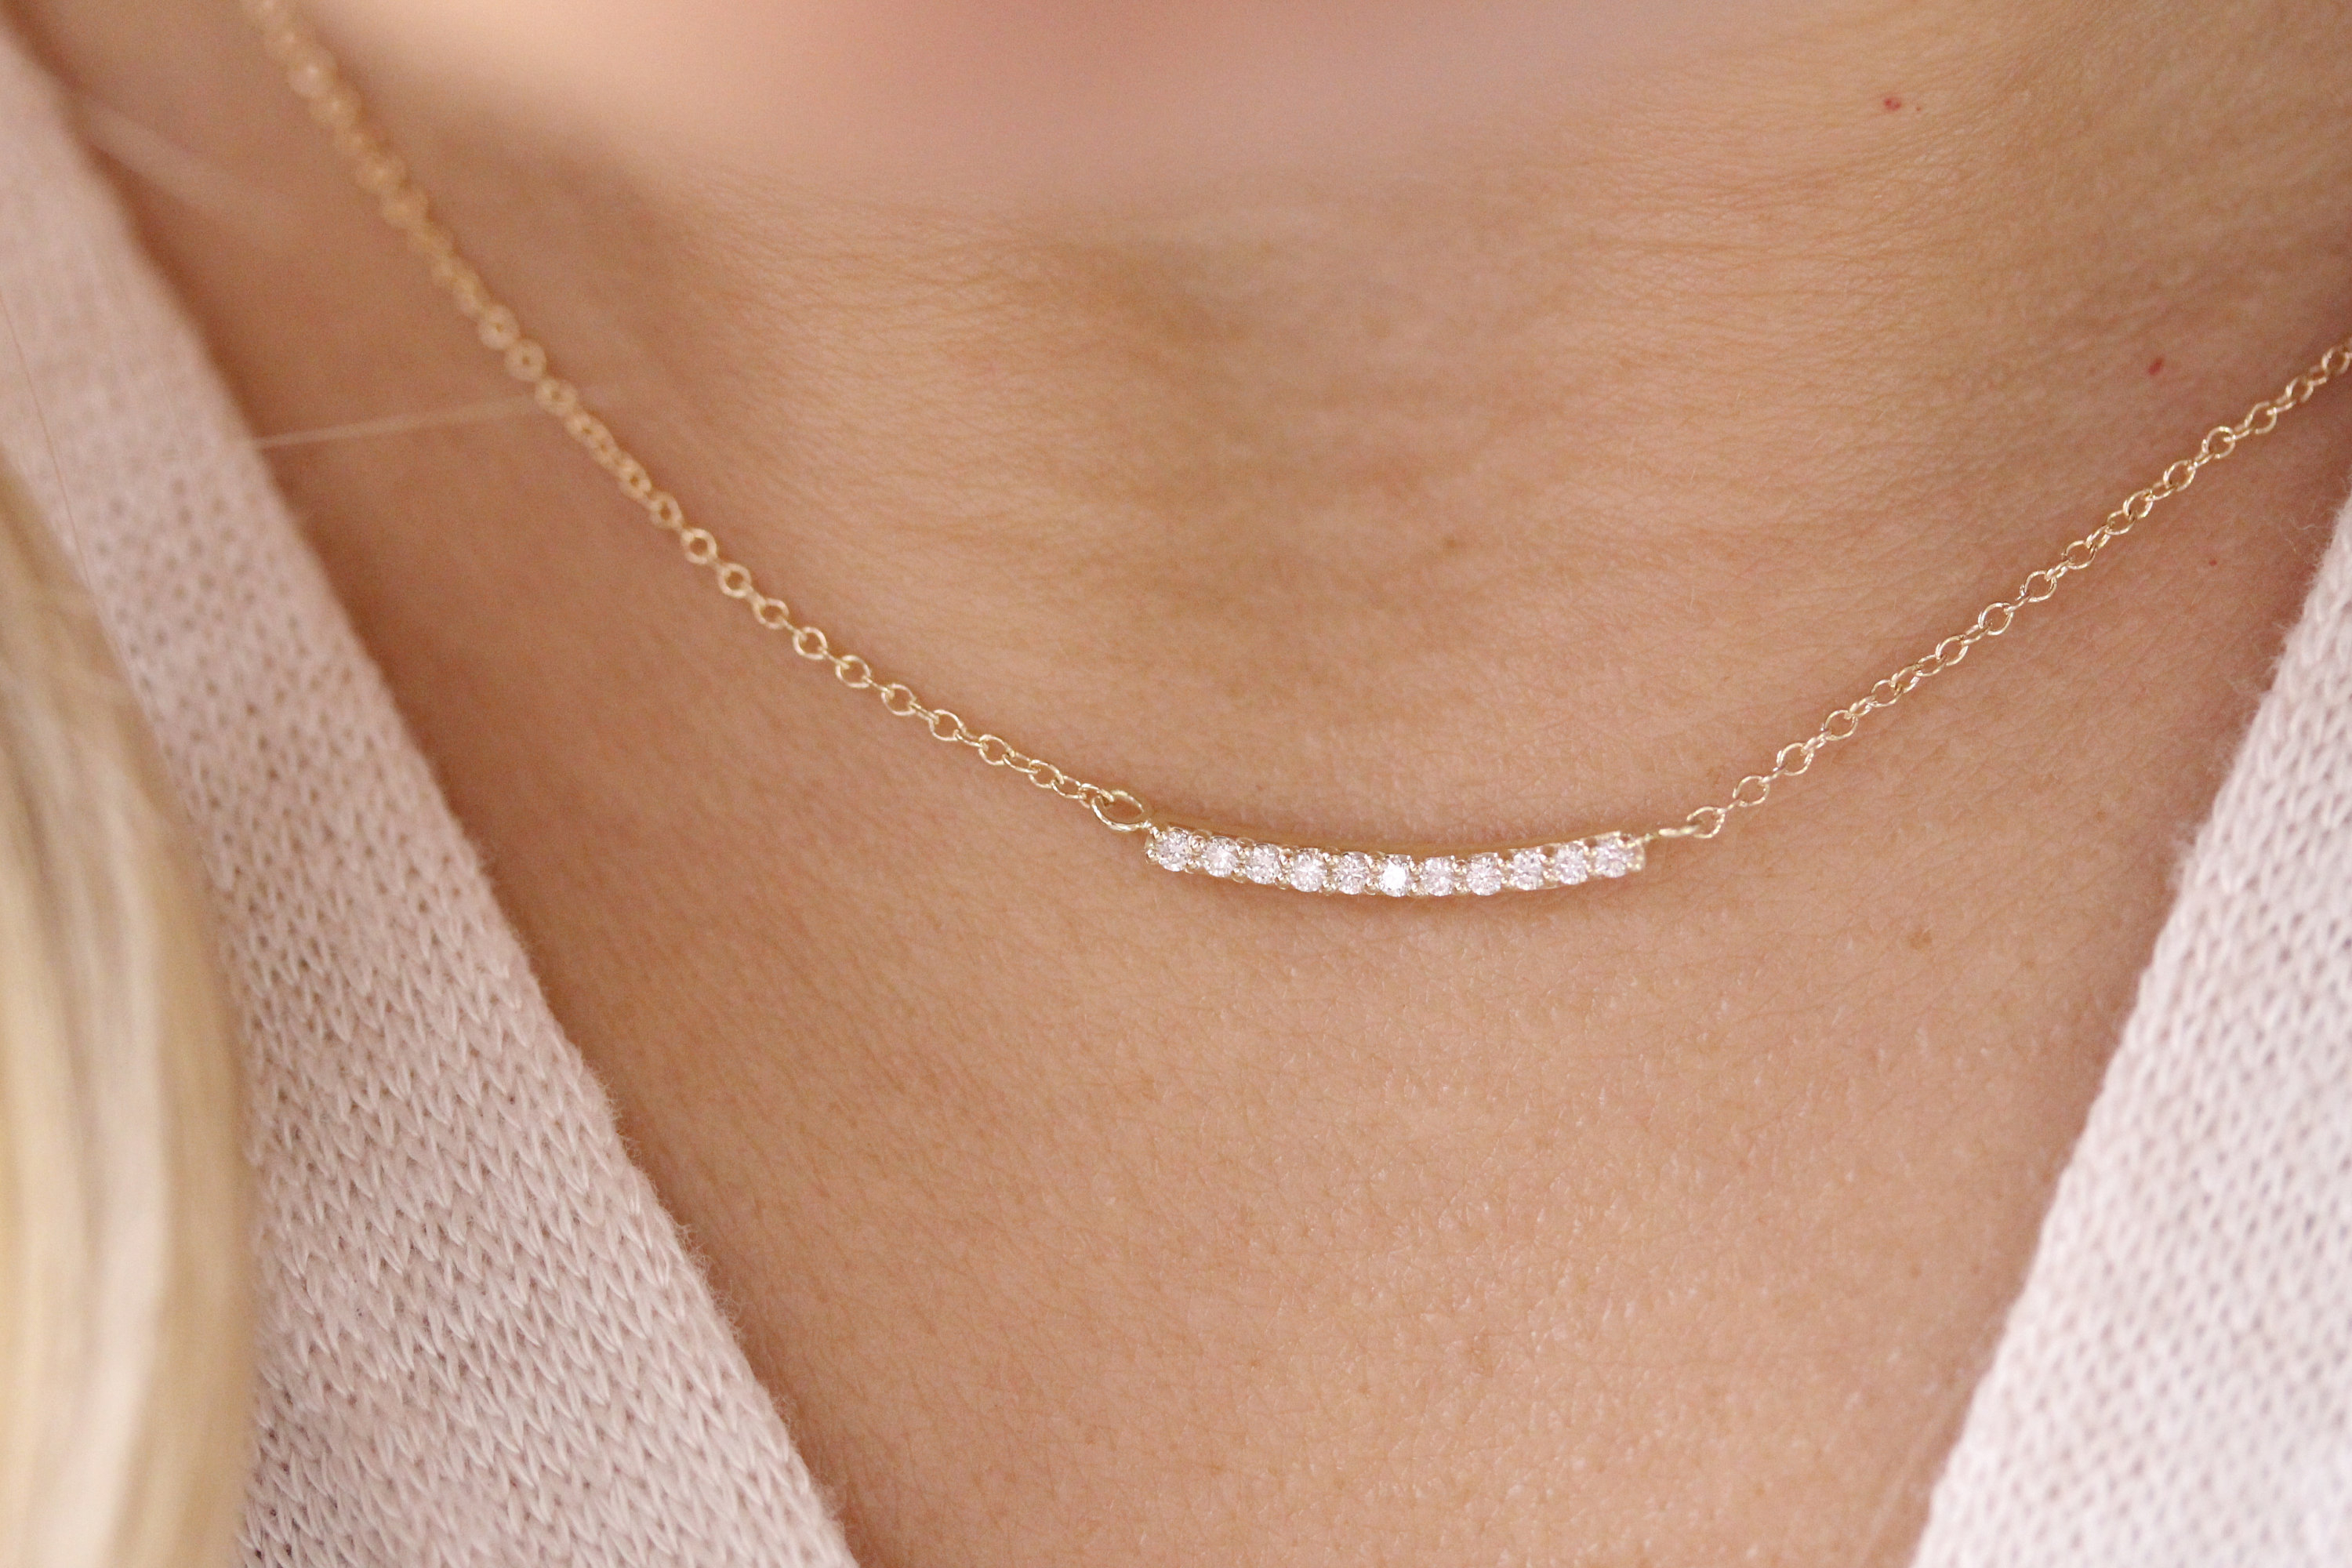 14K Solid Gold Genuine Diamond Bar Necklace Curved Bar Necklace Minimalist Necklace Regarding 2020 Sparkling Curved Bar Necklaces (View 19 of 25)